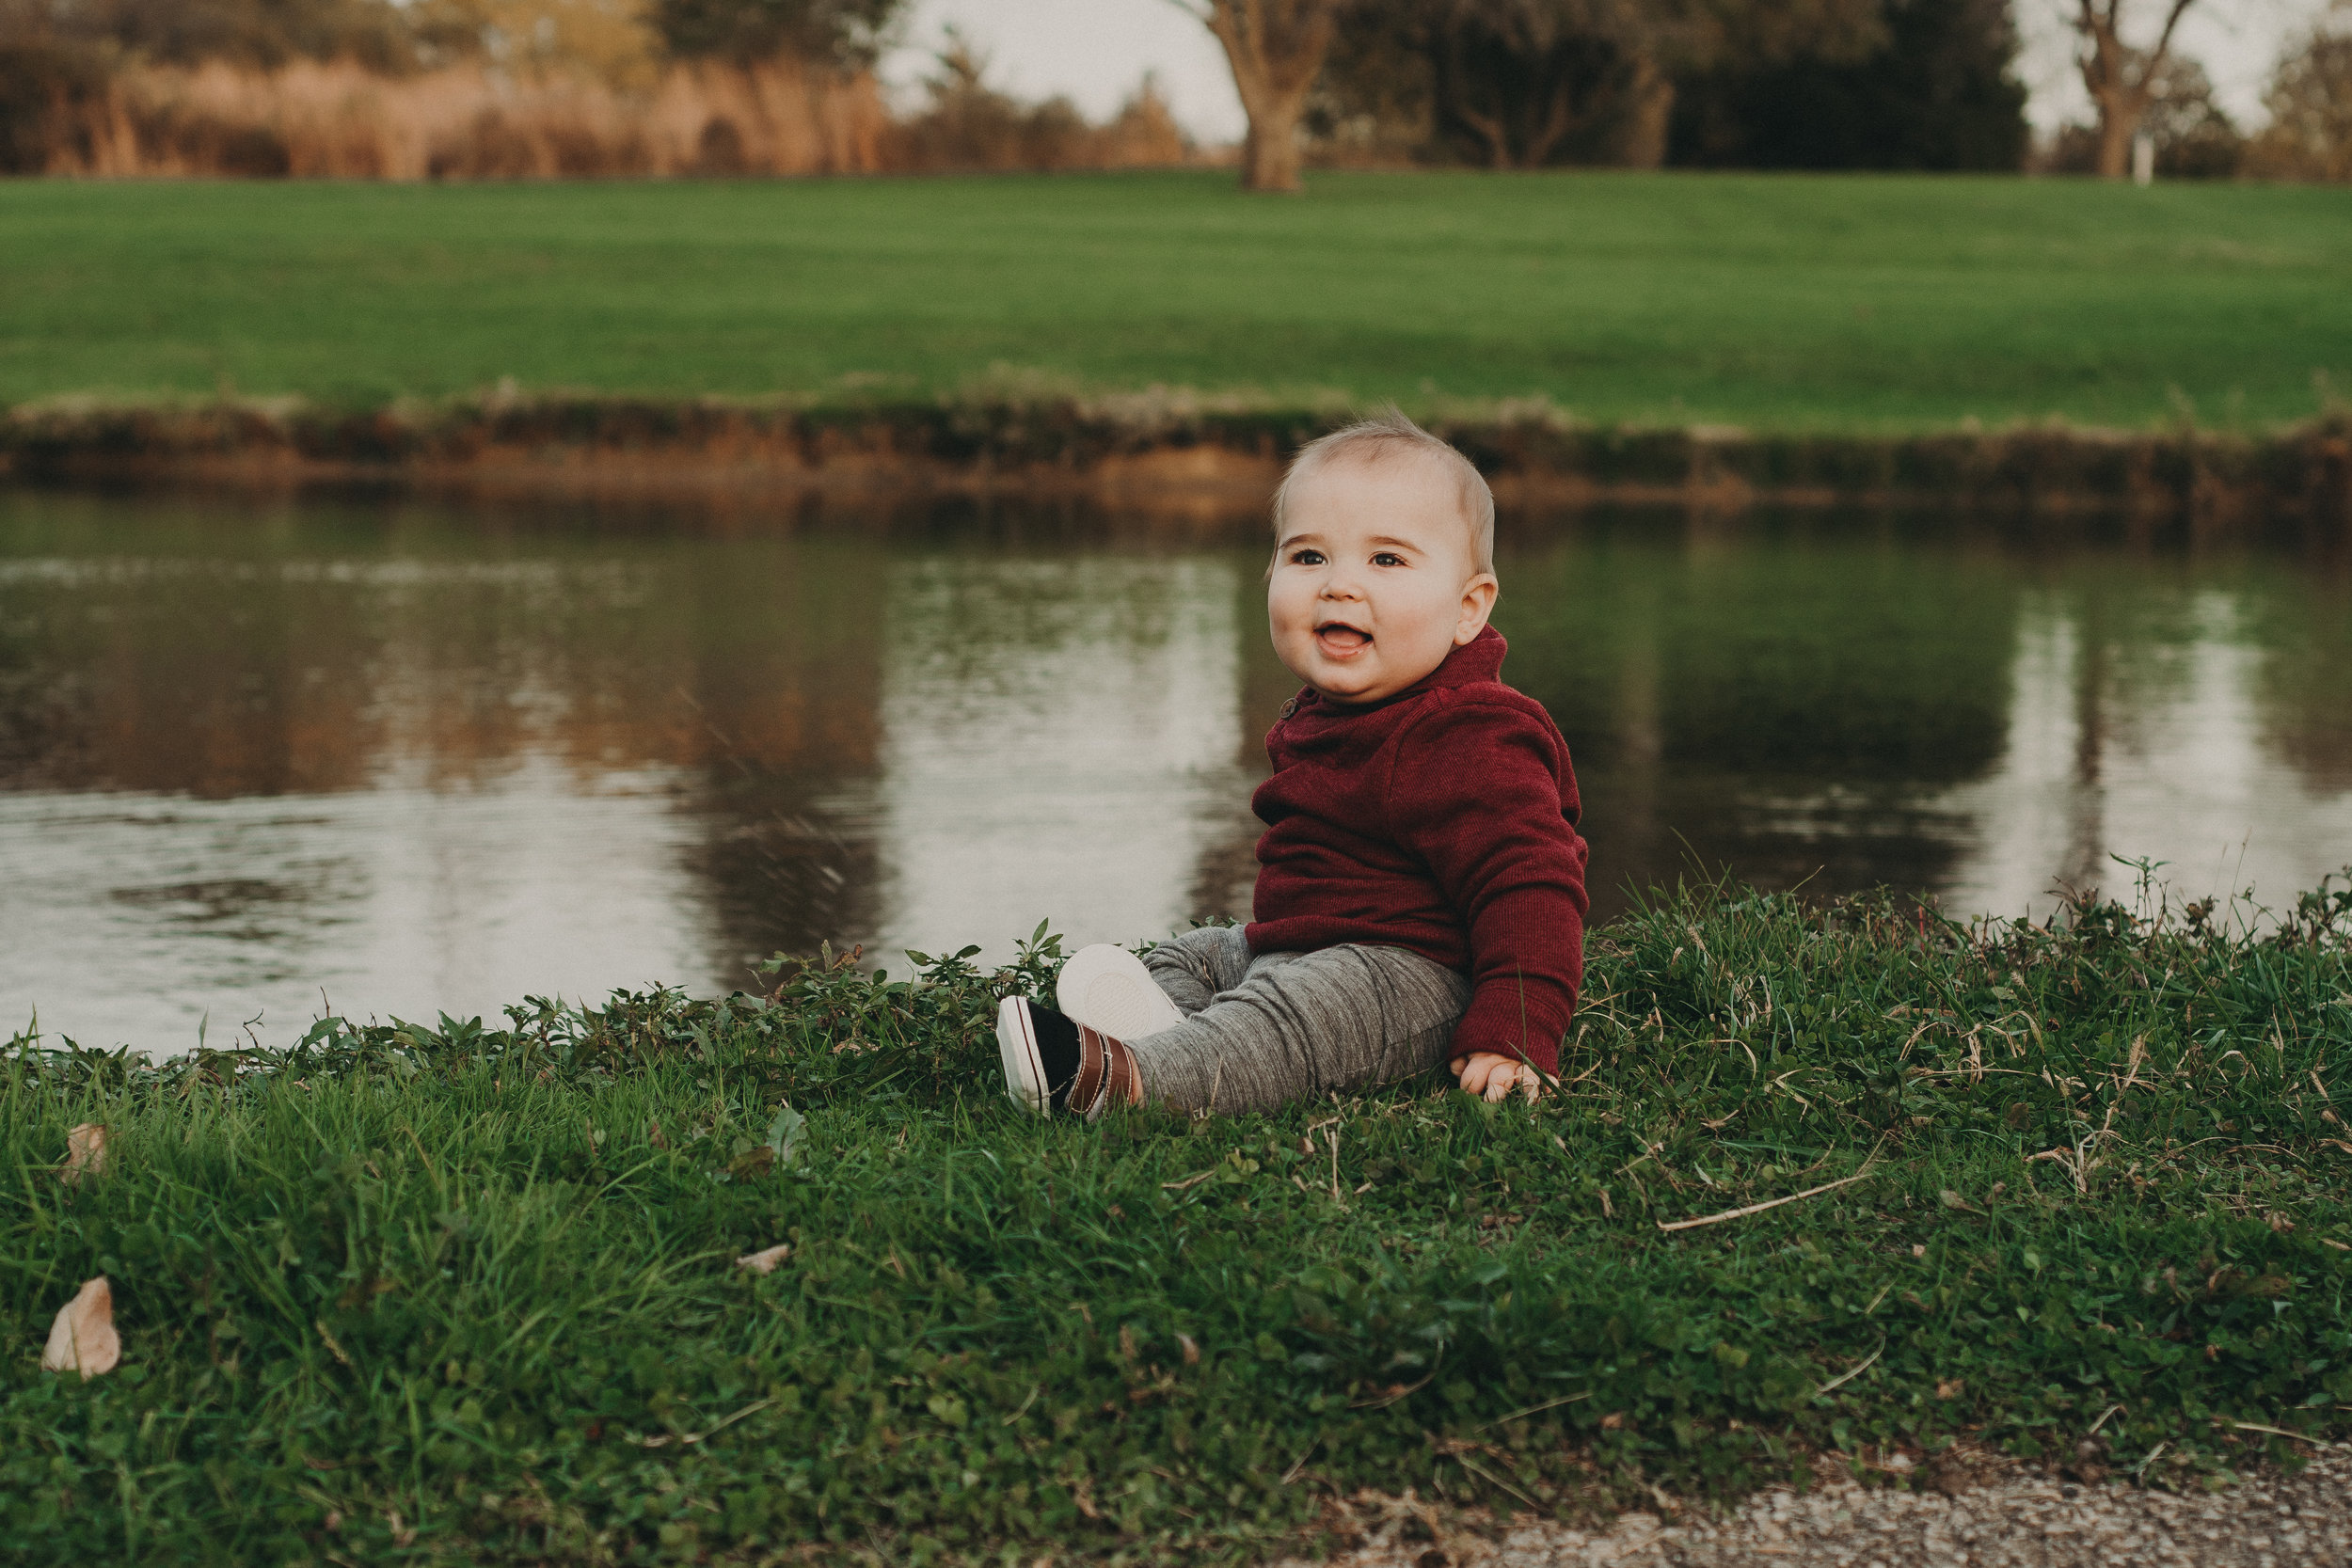 Charlie was loving the water and bank of the pond.